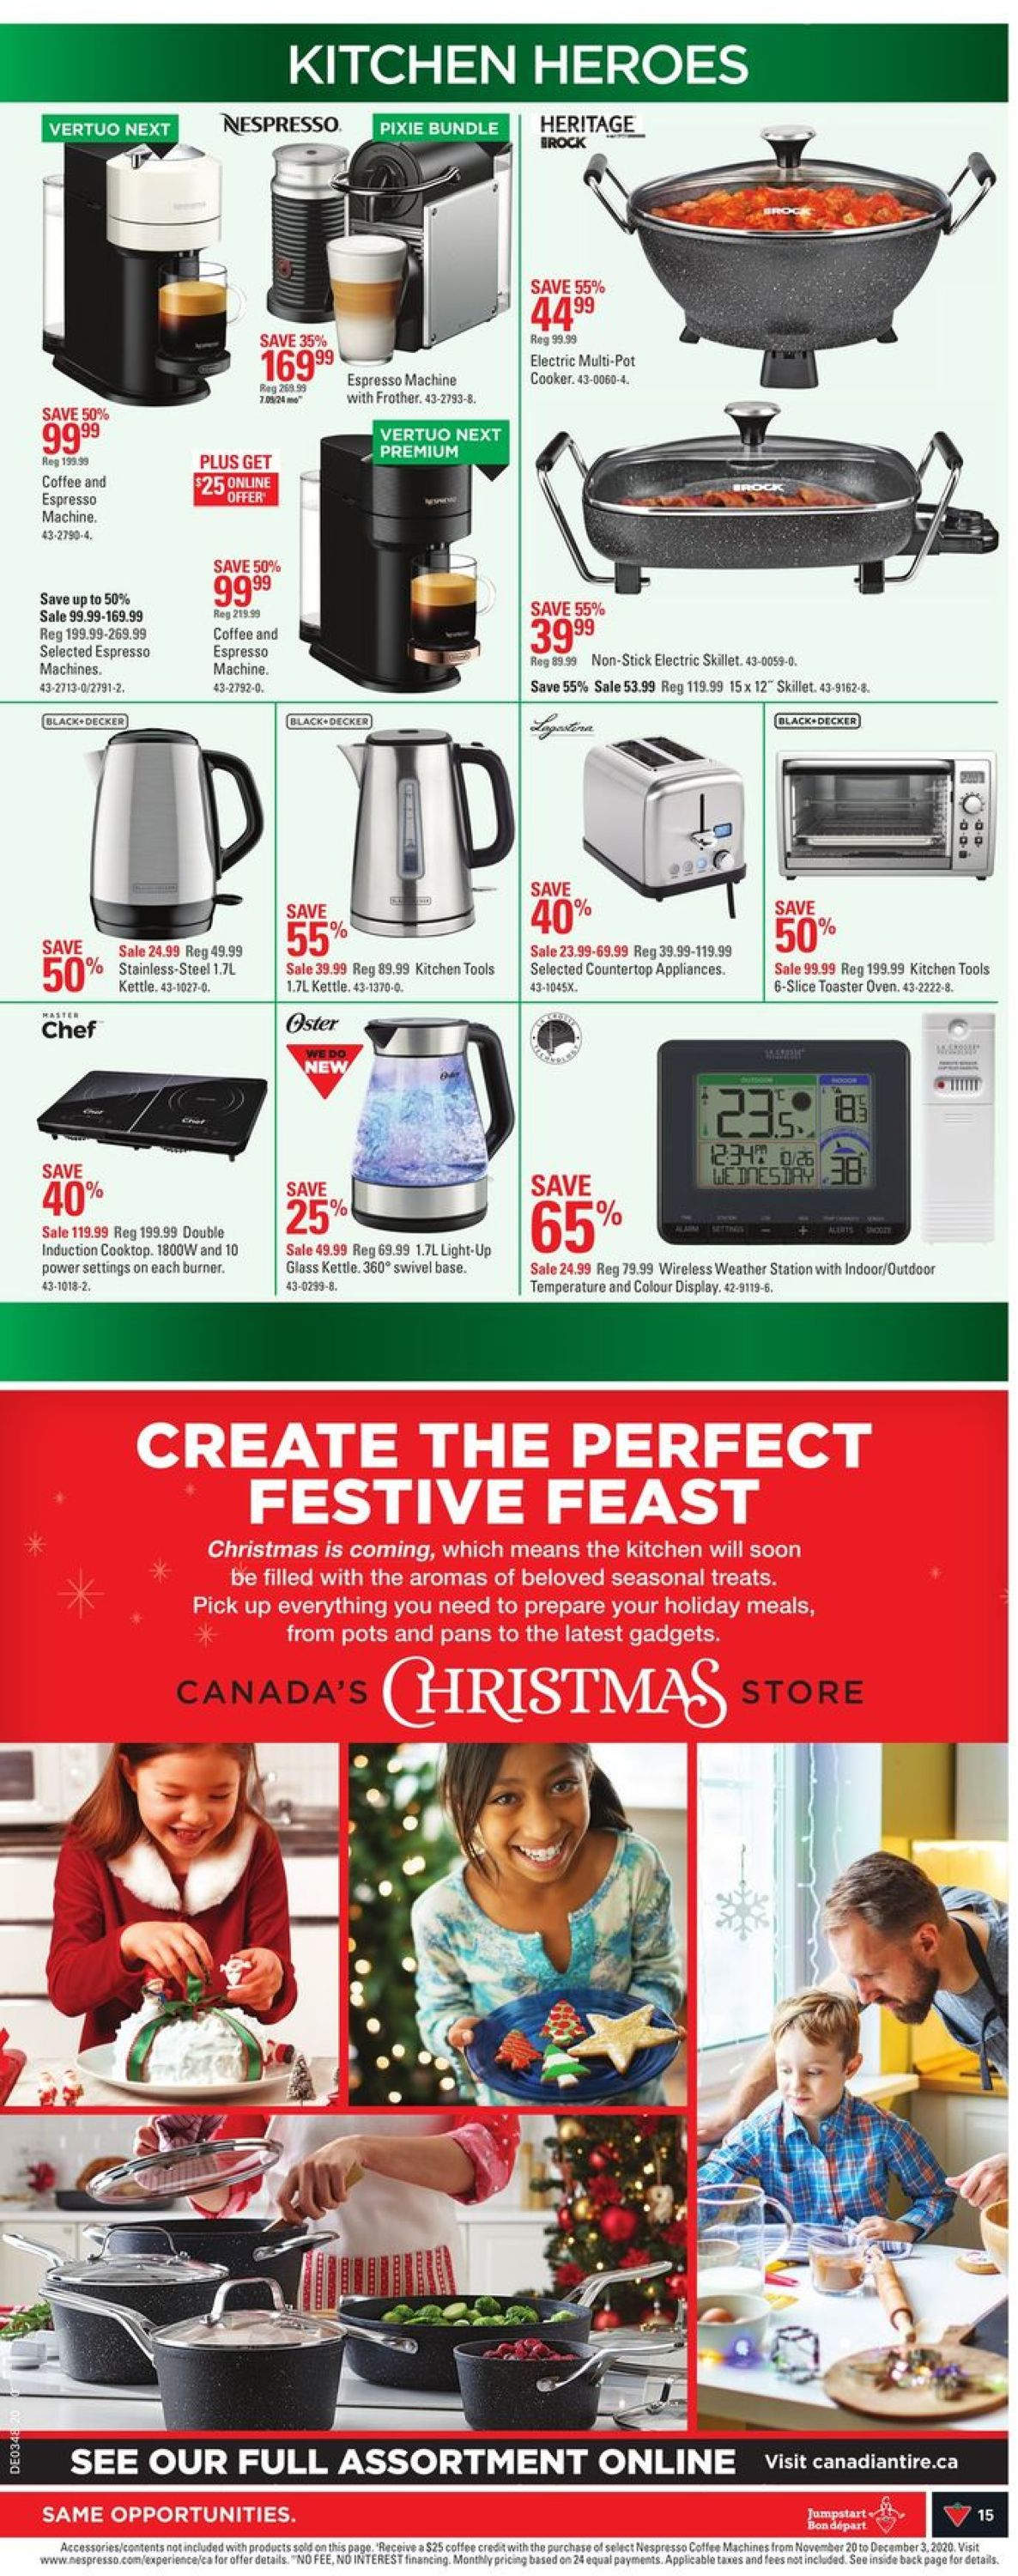 Canadian Tire Christmas Store 2020 Flyer - 11/19-11/25/2020 (Page 19)